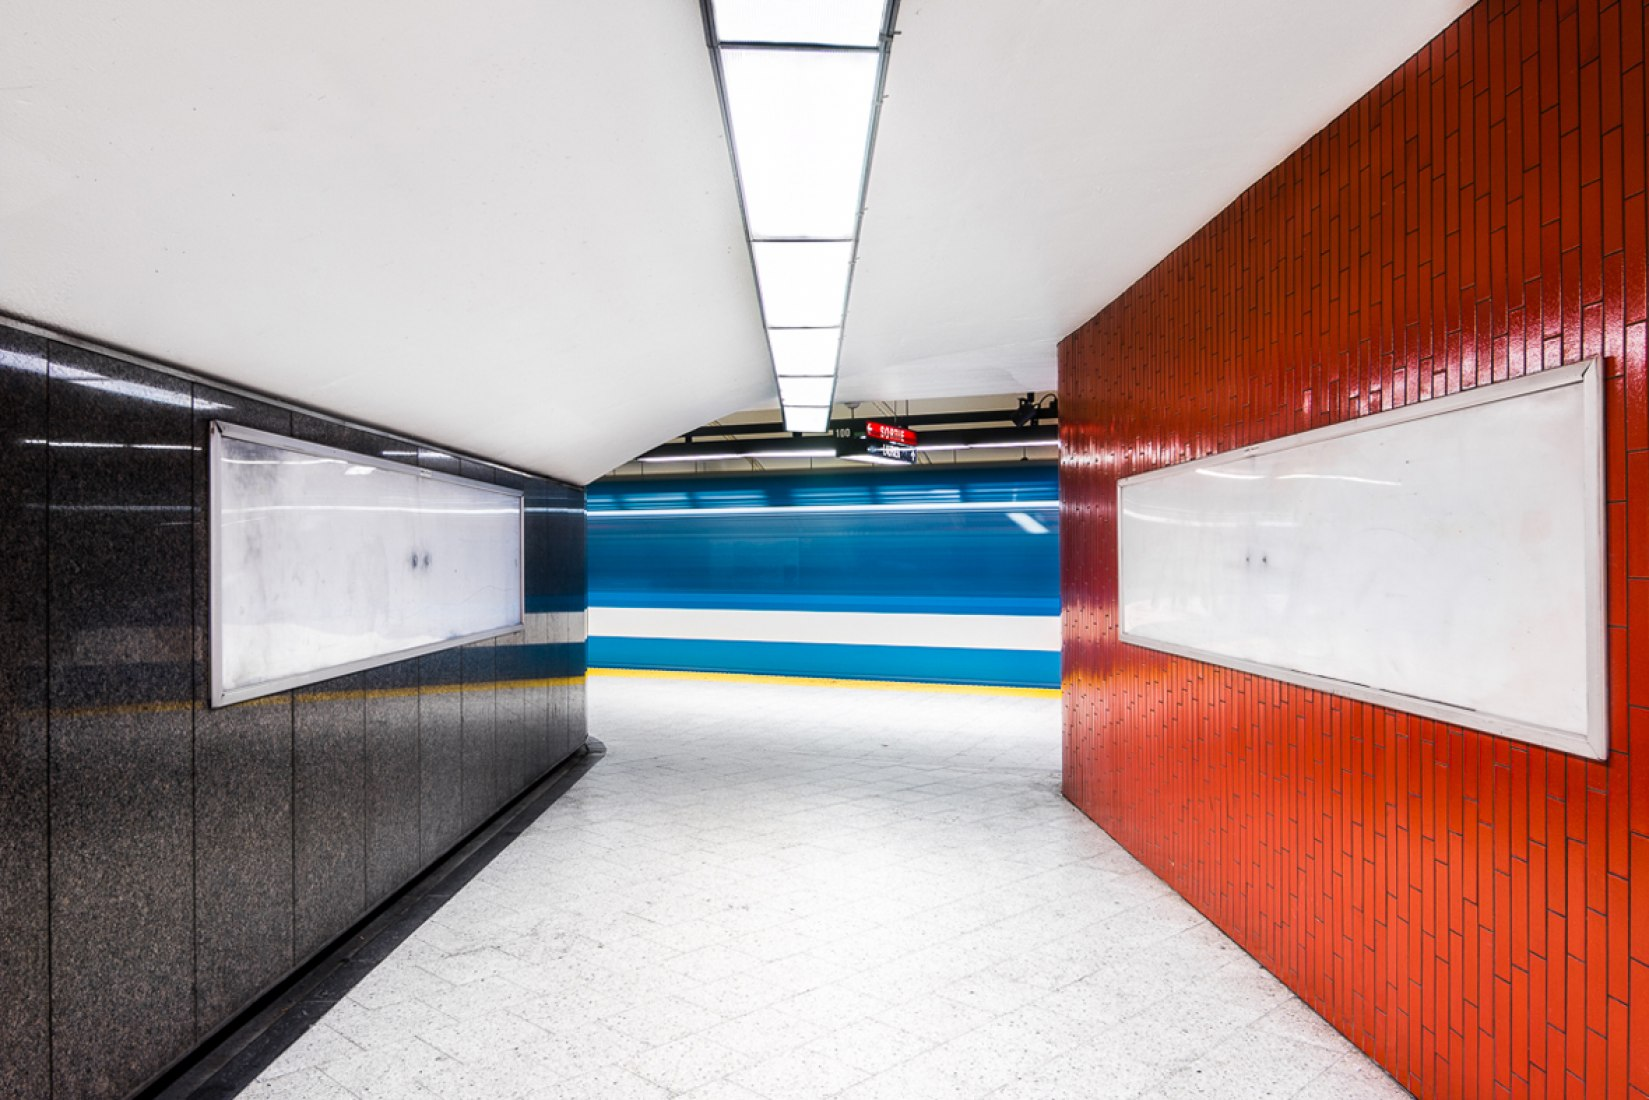 Train crossing through the station. The Montreal Metro Project by Chris M. Forsyth. Photography © Chris M. Forsyth